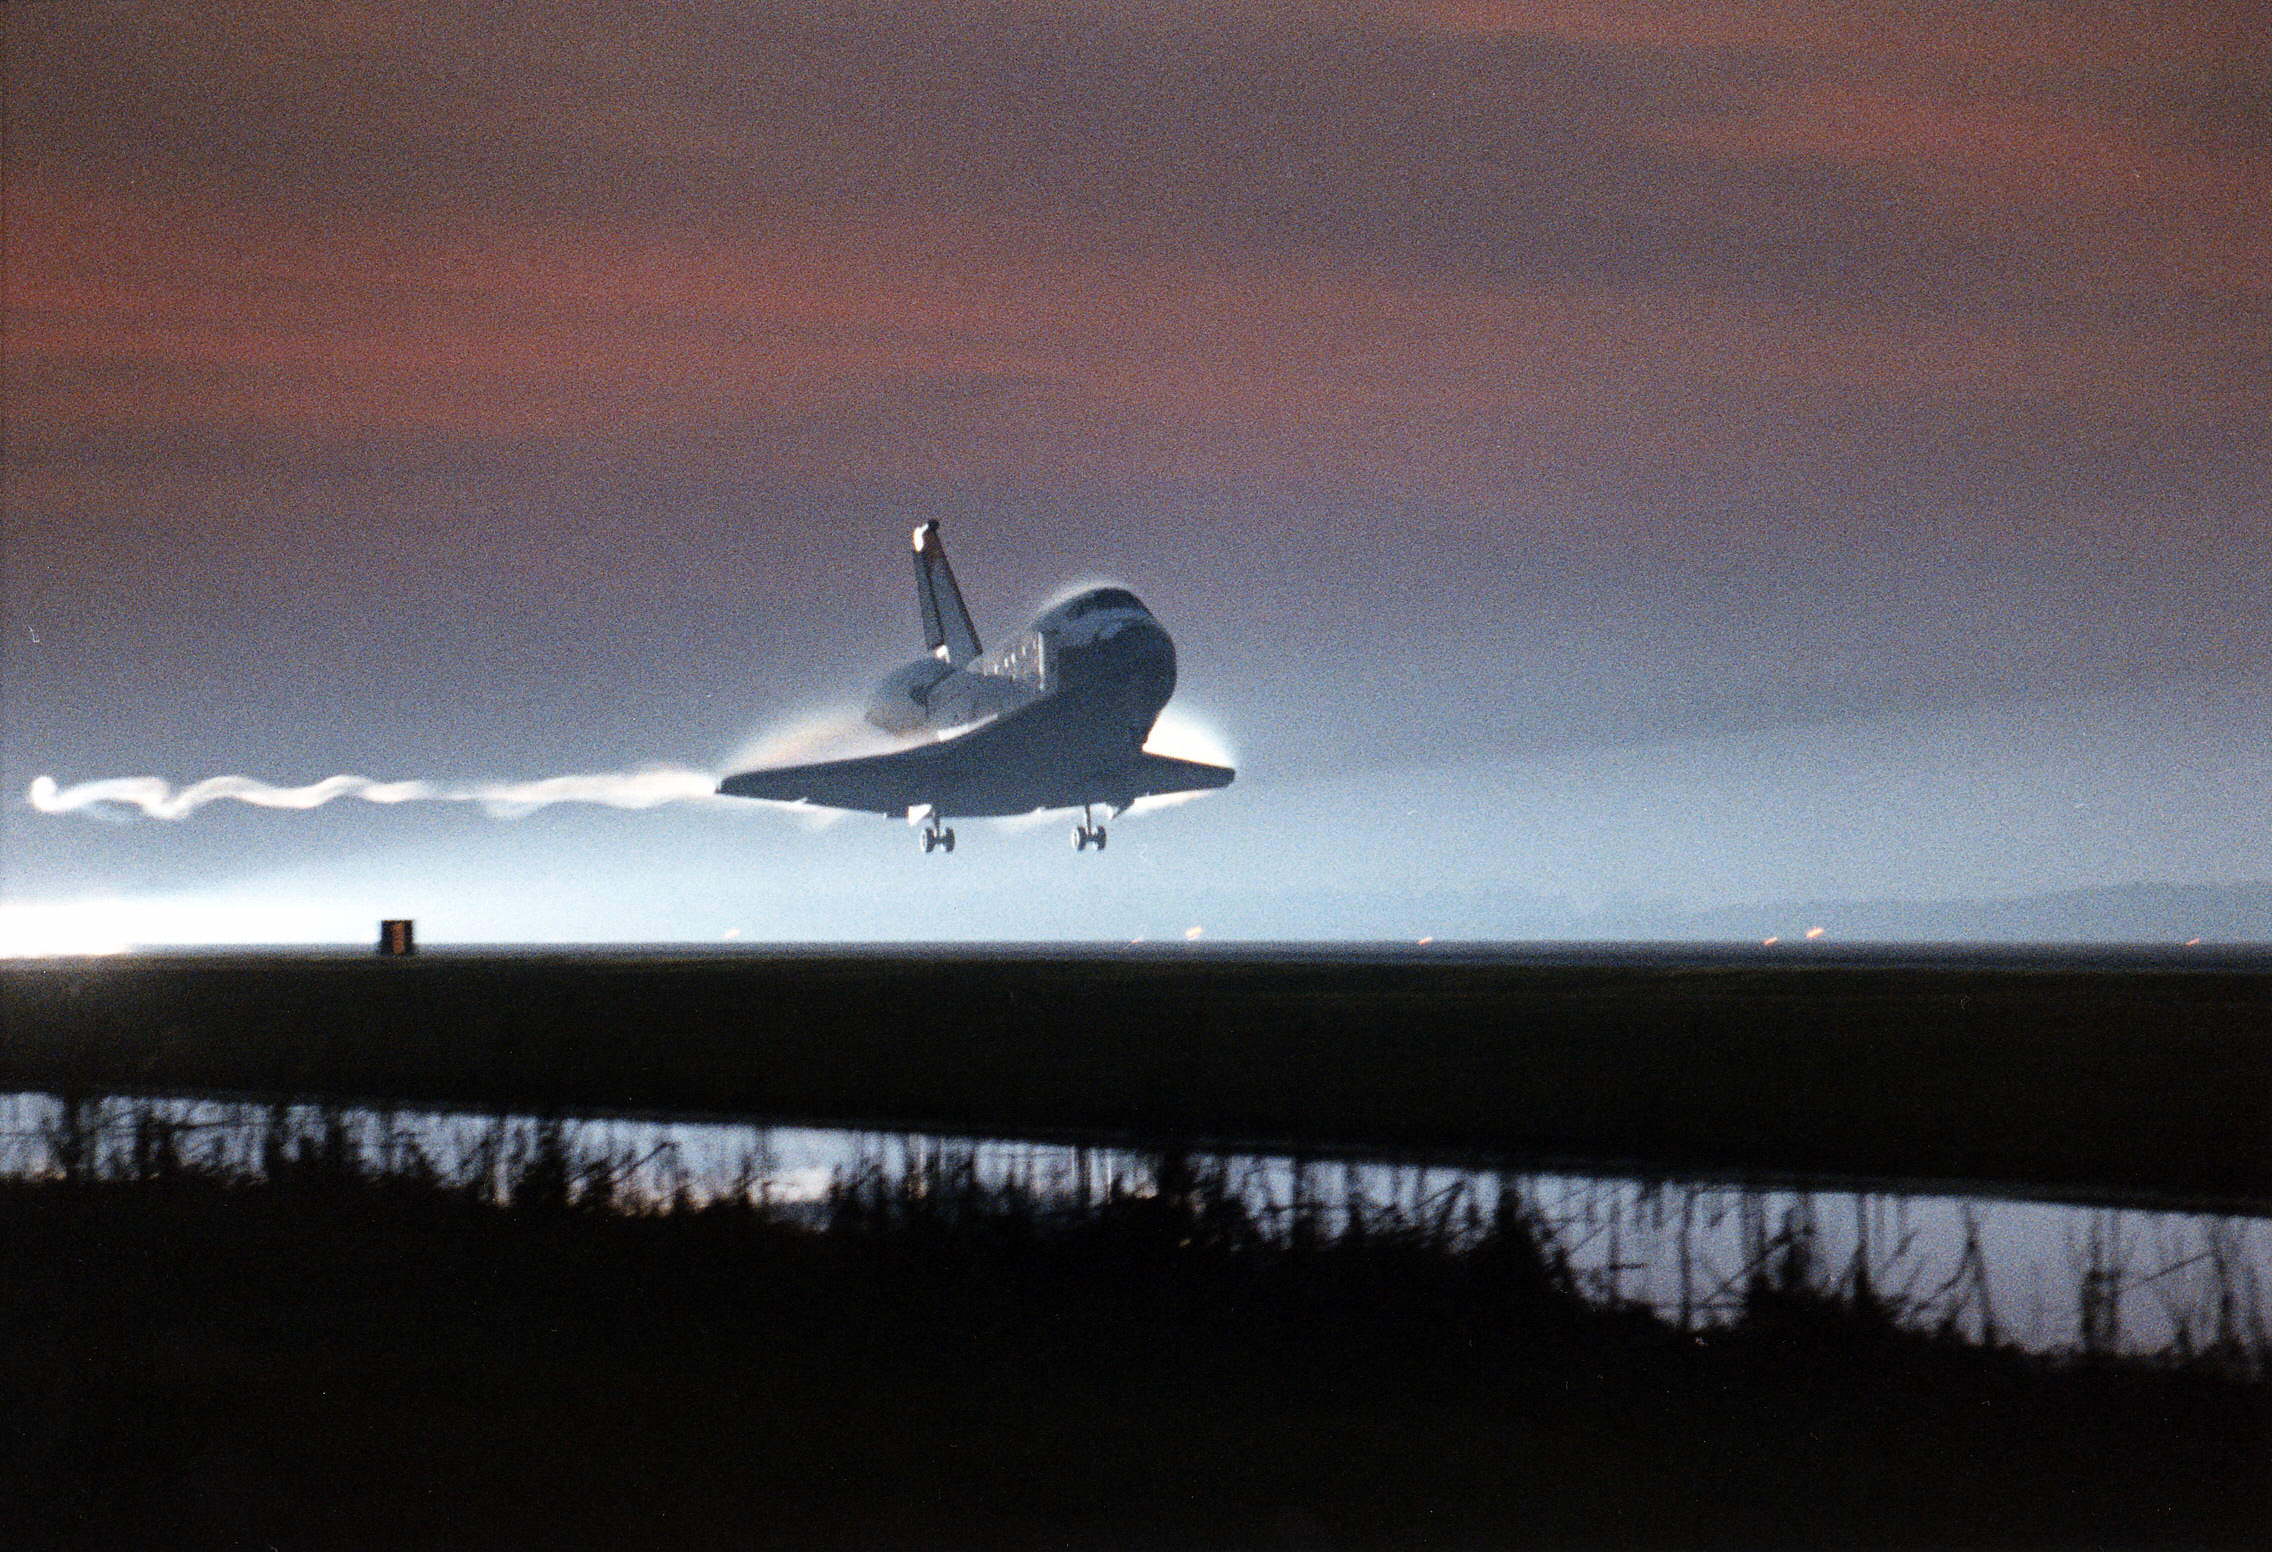 space shuttle program history - photo #38